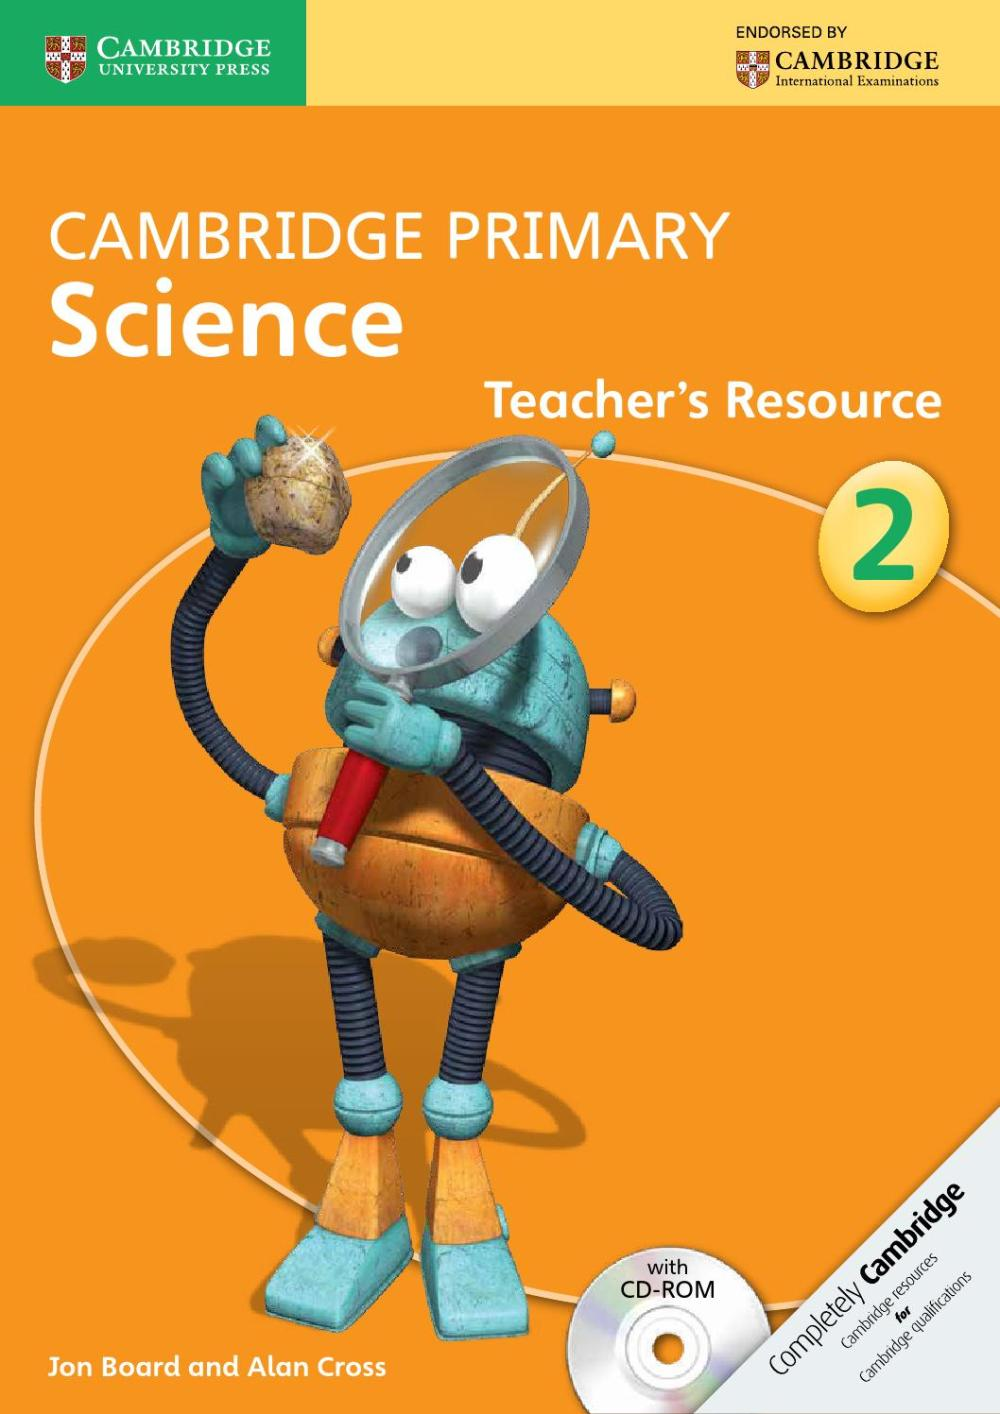 medium resolution of Cambridge Primary Science Teacher's Resource Book 2 with CD-ROM by  Cambridge University Press Education - issuu